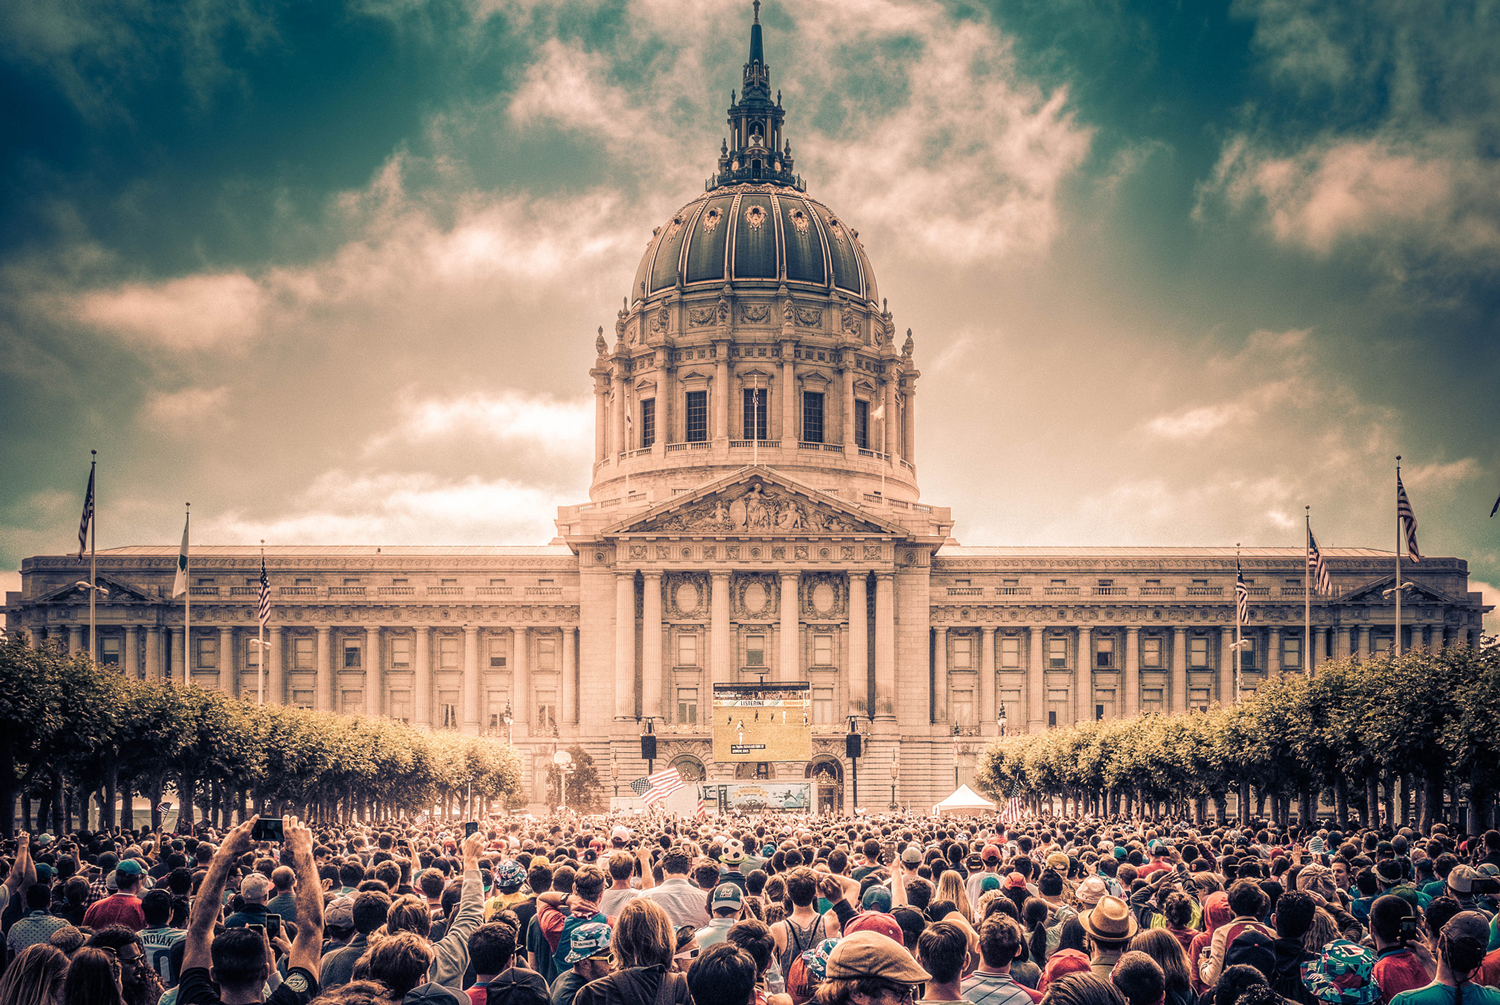 Outside San Francisco City Hall with crowd in front